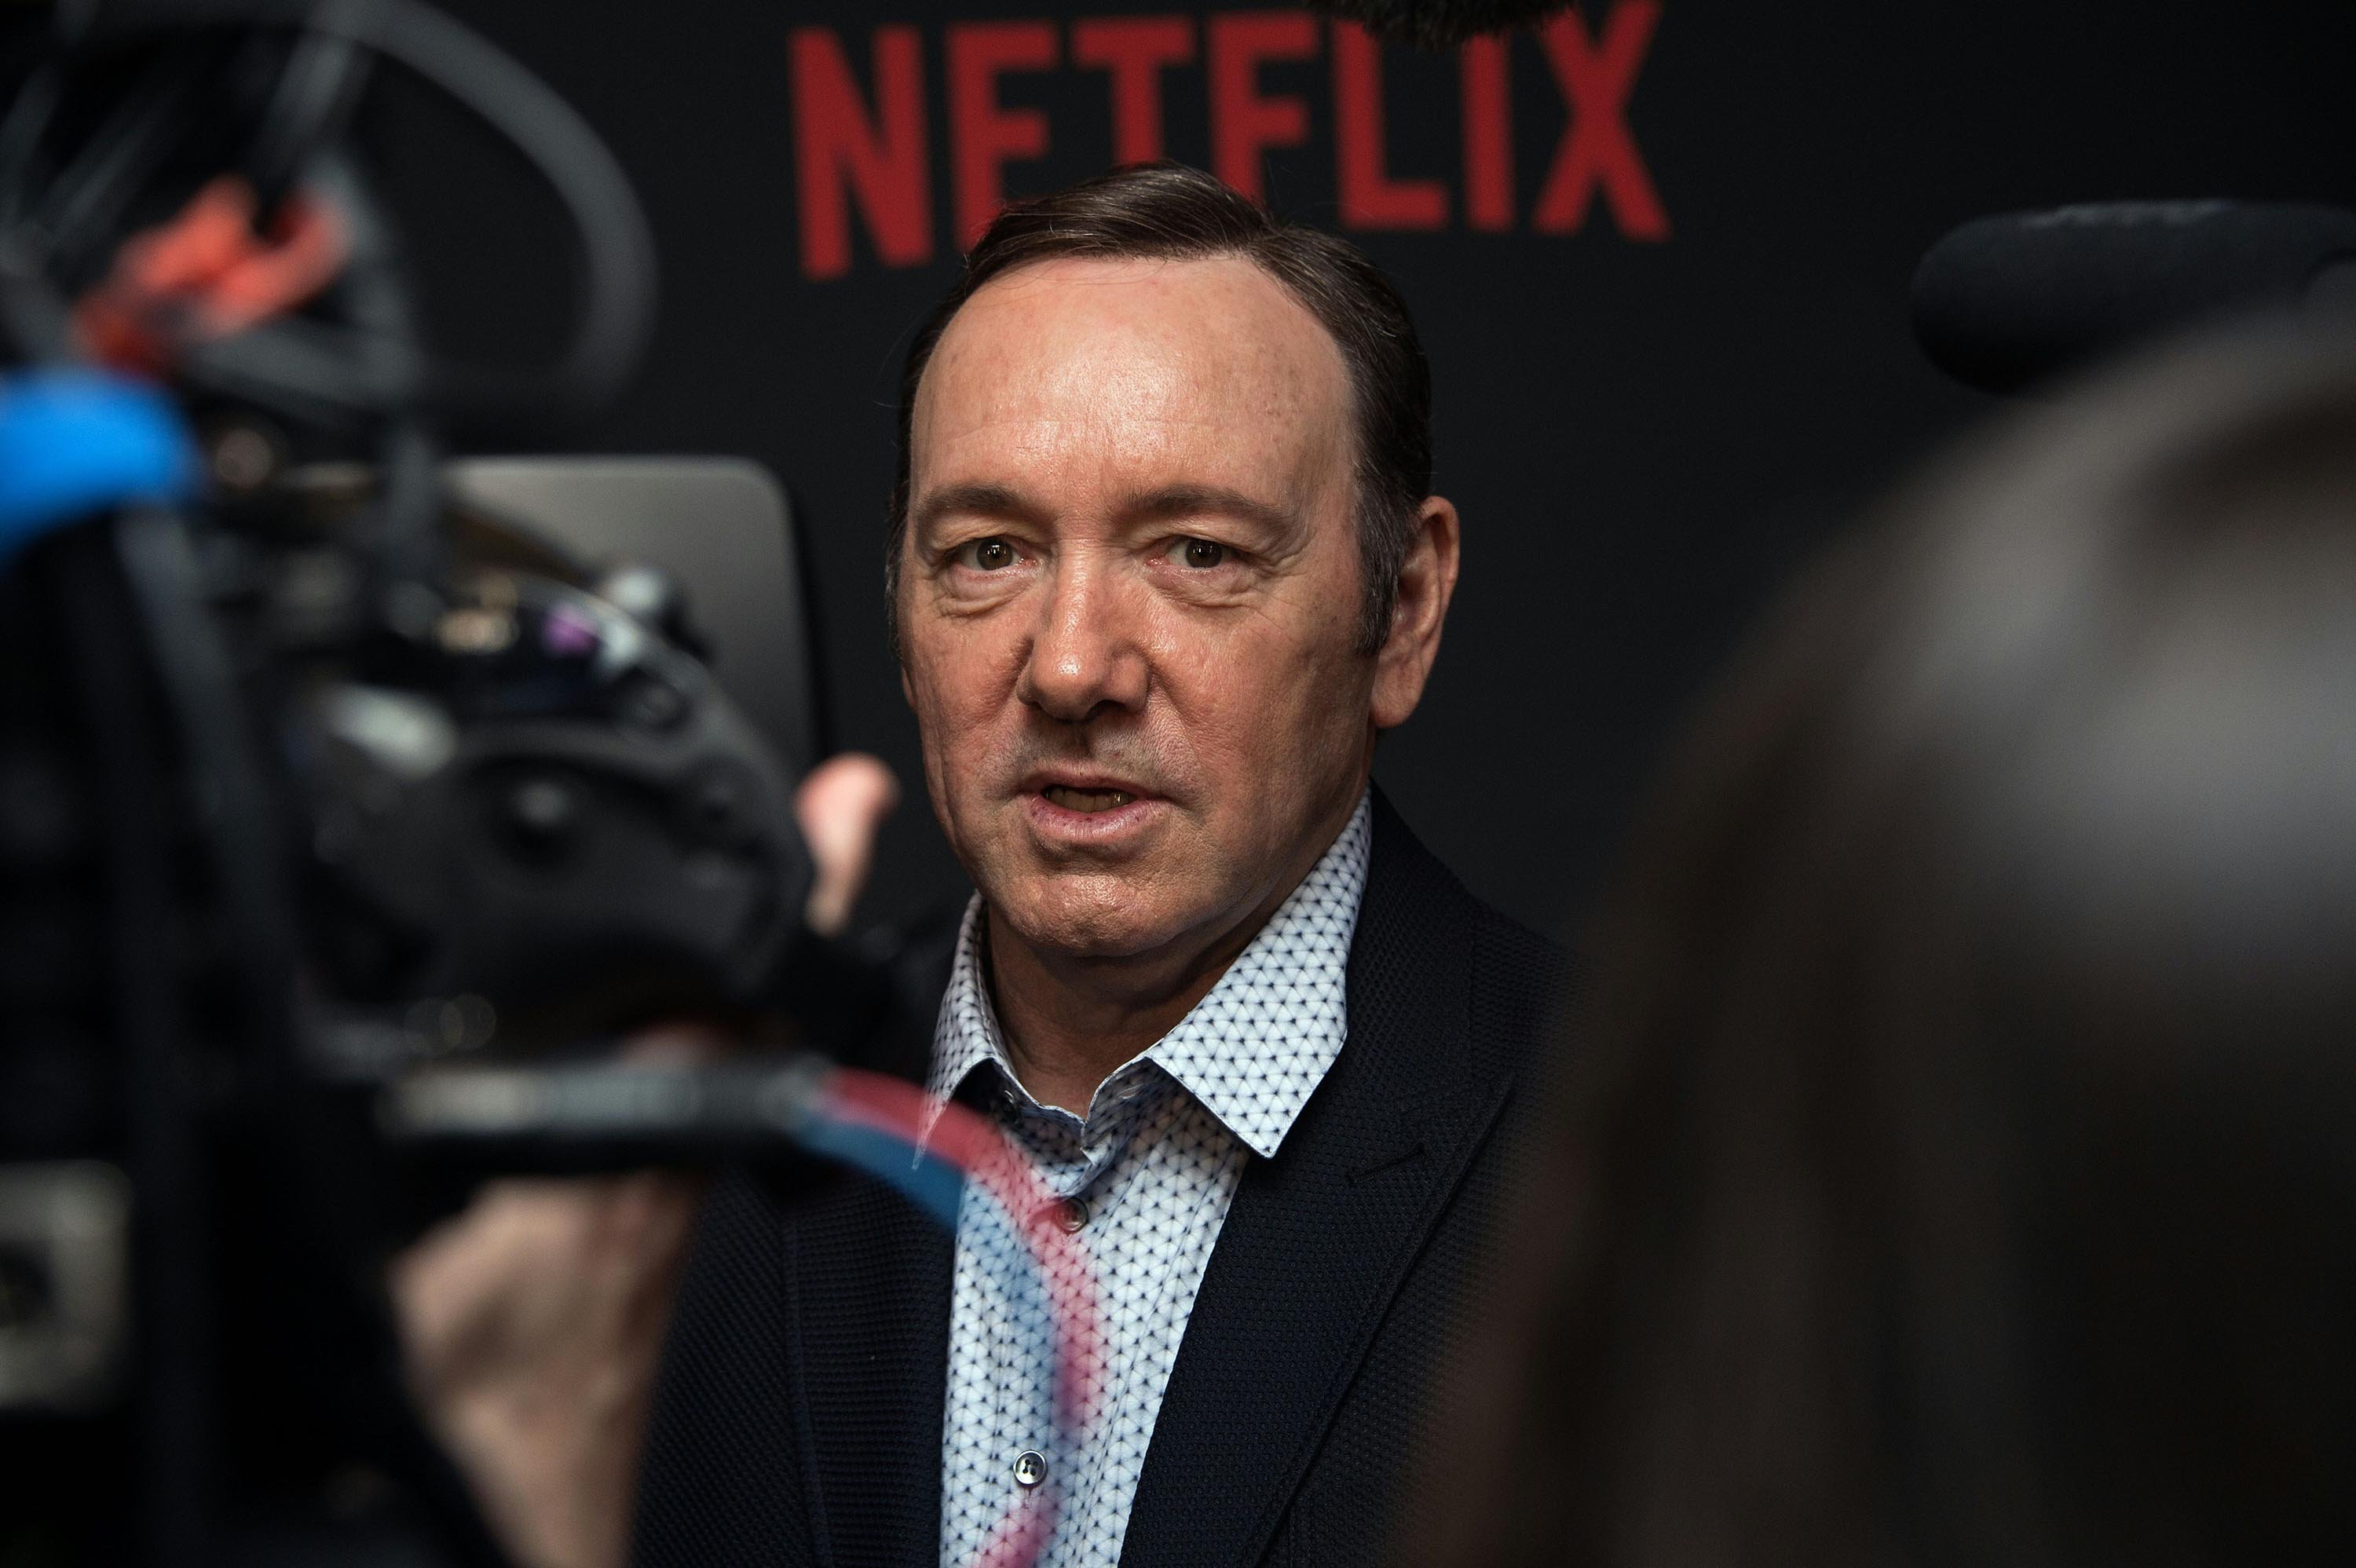 London's Old Vic finds 20 claims of 'inappropriate behavior' against Kevin Spacey